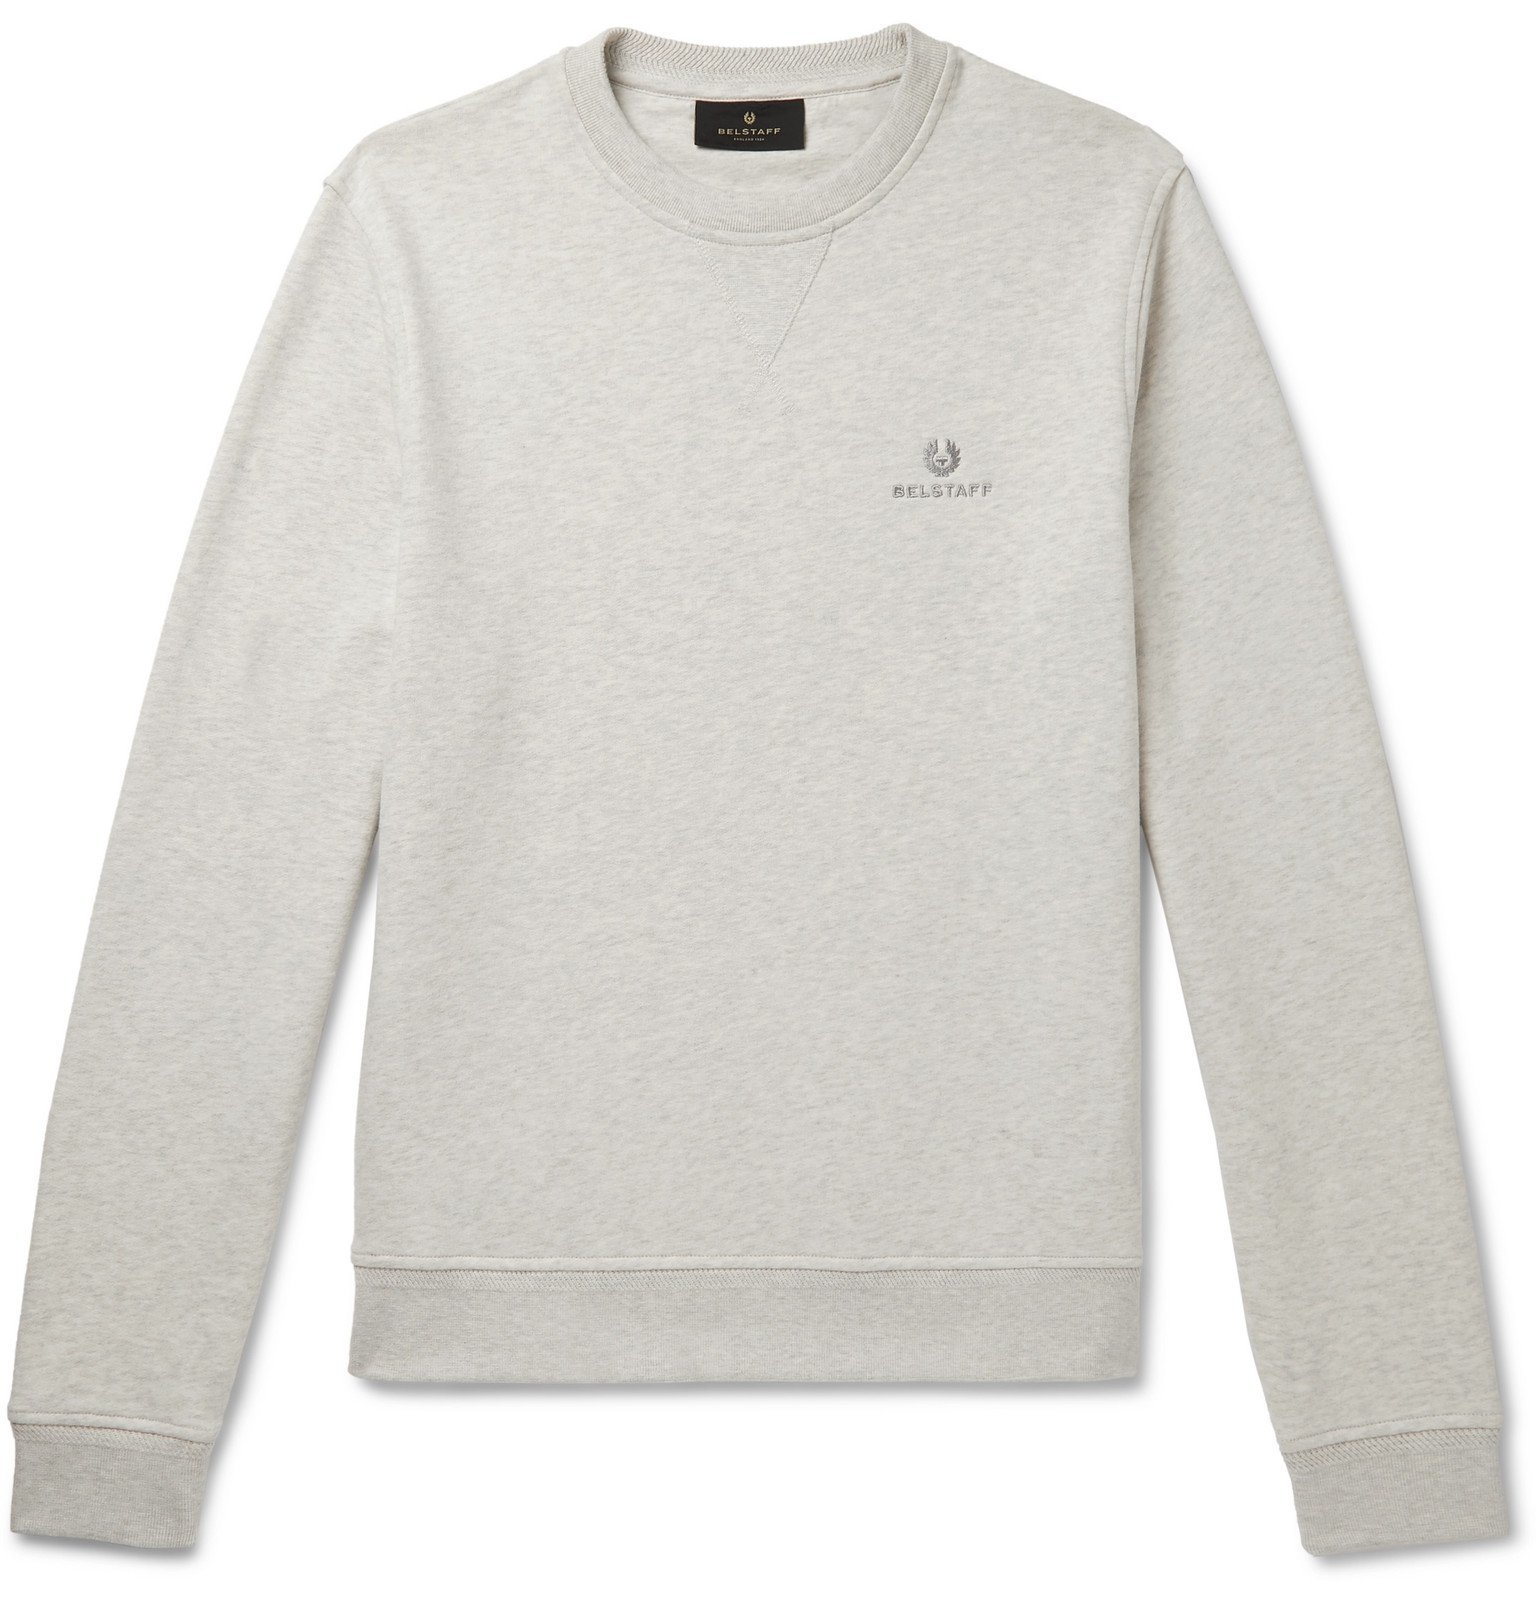 Belstaff - Logo-Embroidered Loopback Cotton-Jersey Sweatshirt - Gray